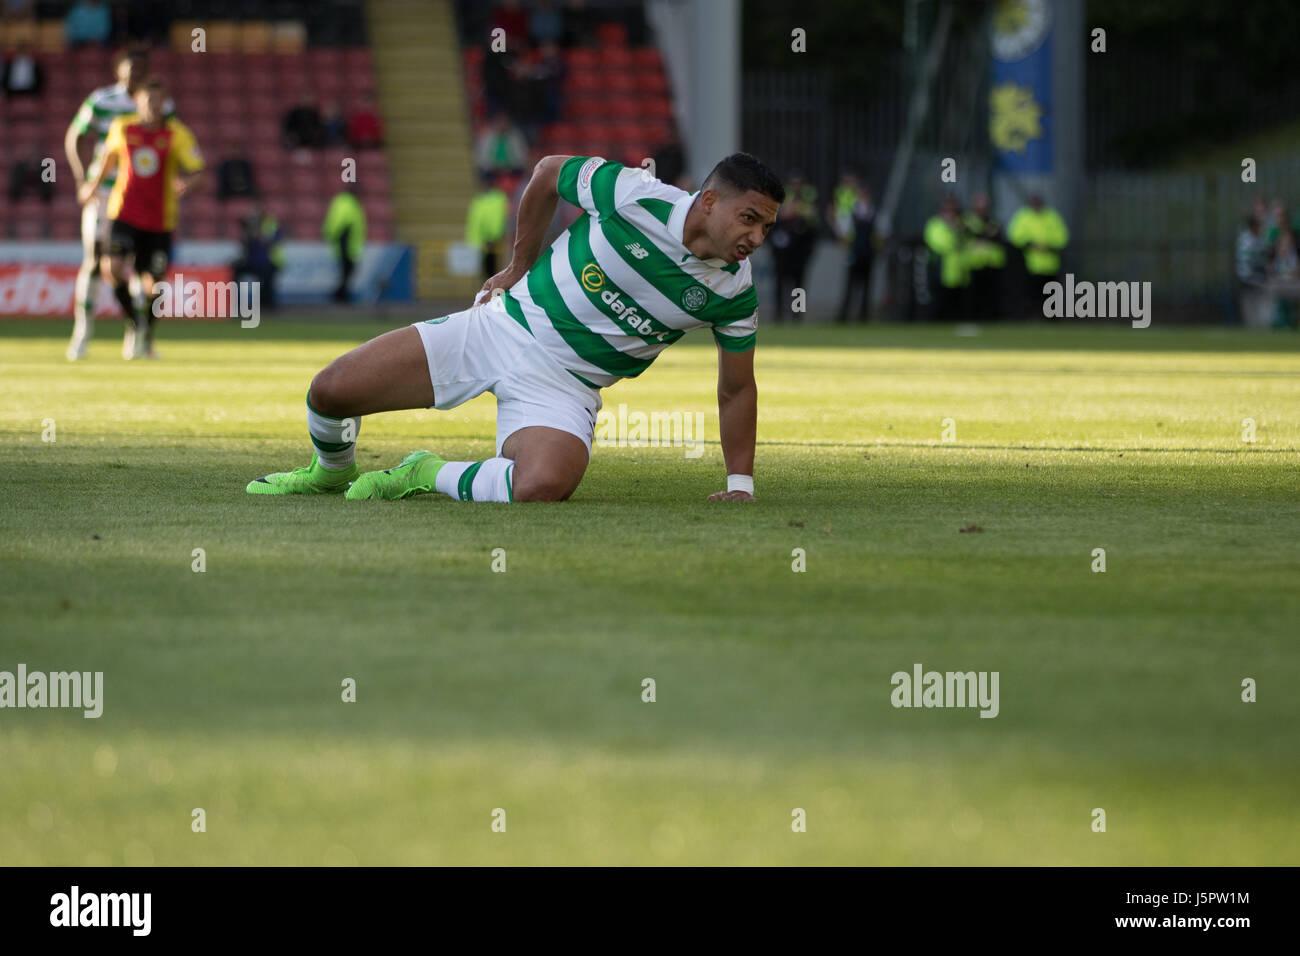 Glasgow, Scotland UK, 18 May 2017, Partick Thistle v Celtic, Firhill Stadium, SPFL Match 5-0. Scottish Premiership - Stock Image